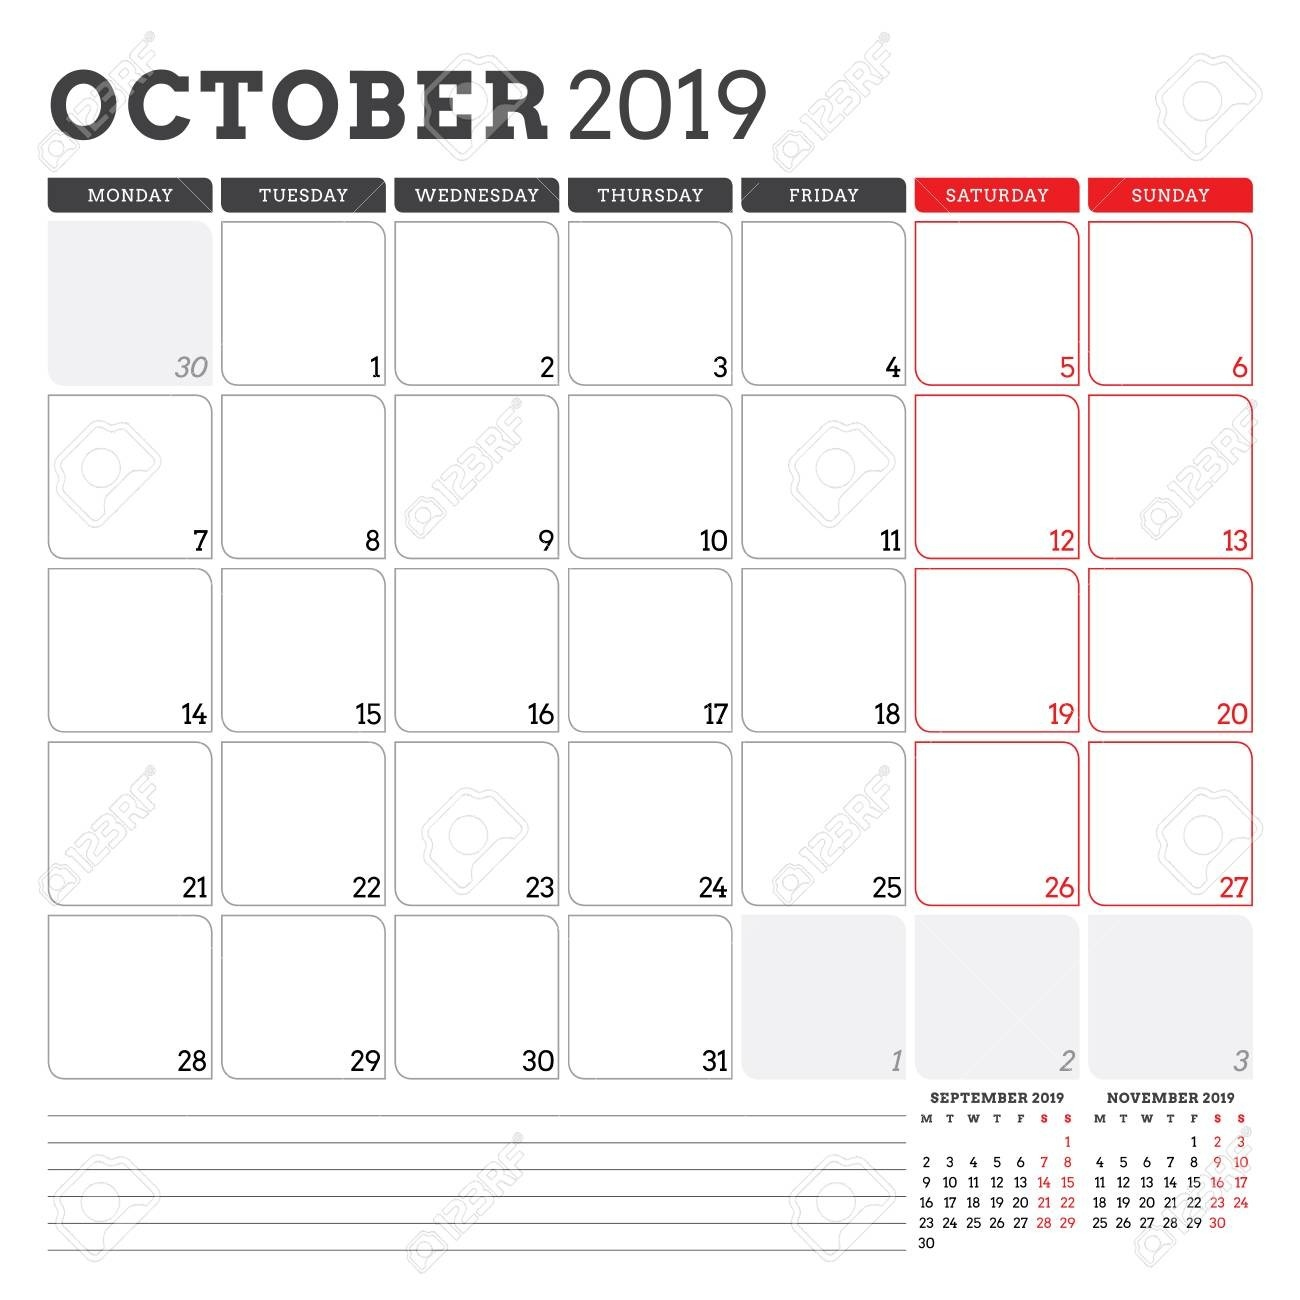 Calendar Planner For October 2019. Week Starts On Monday. Printable..-Monday Start Calendar Template